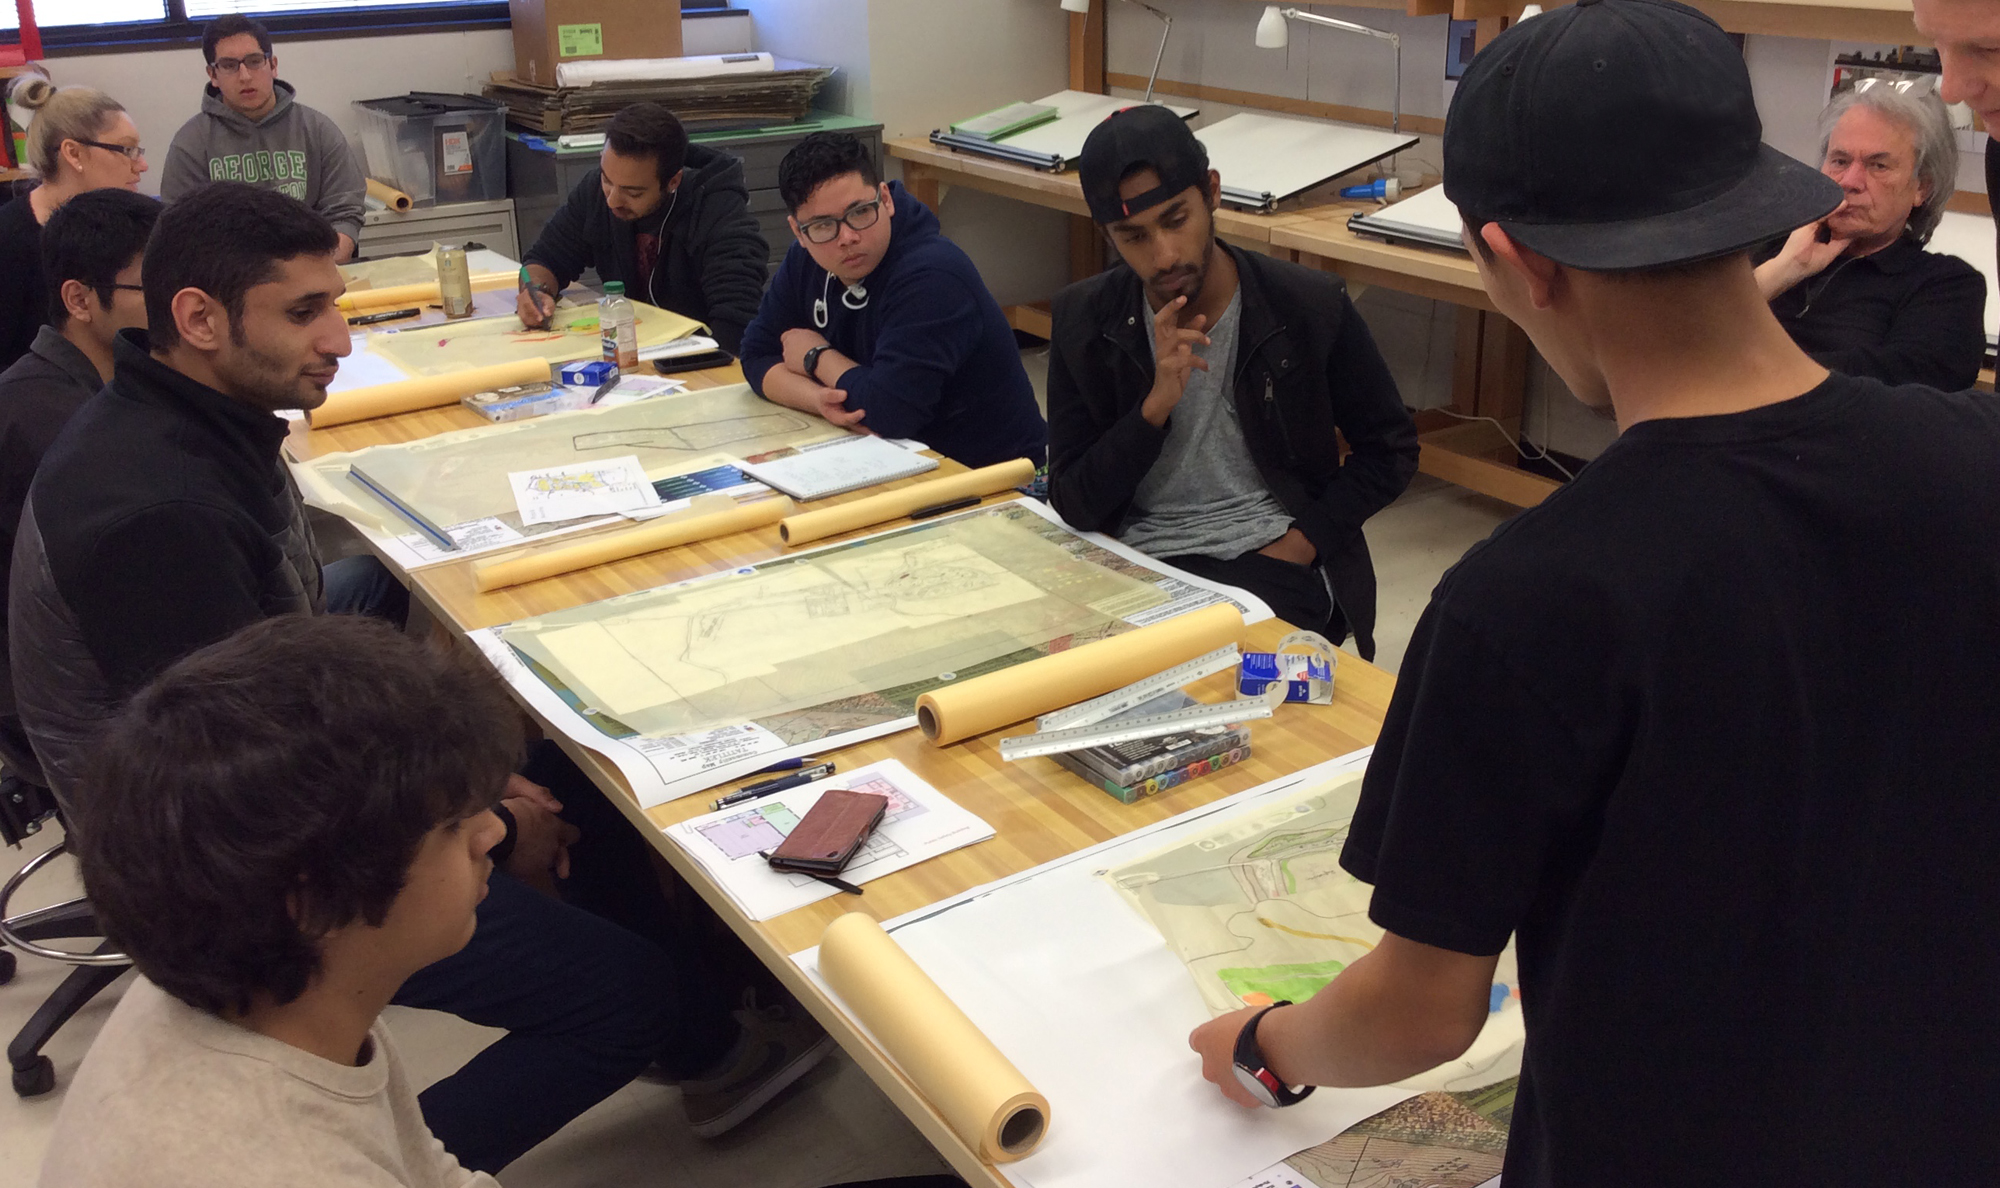 students around a design table with drafting designs